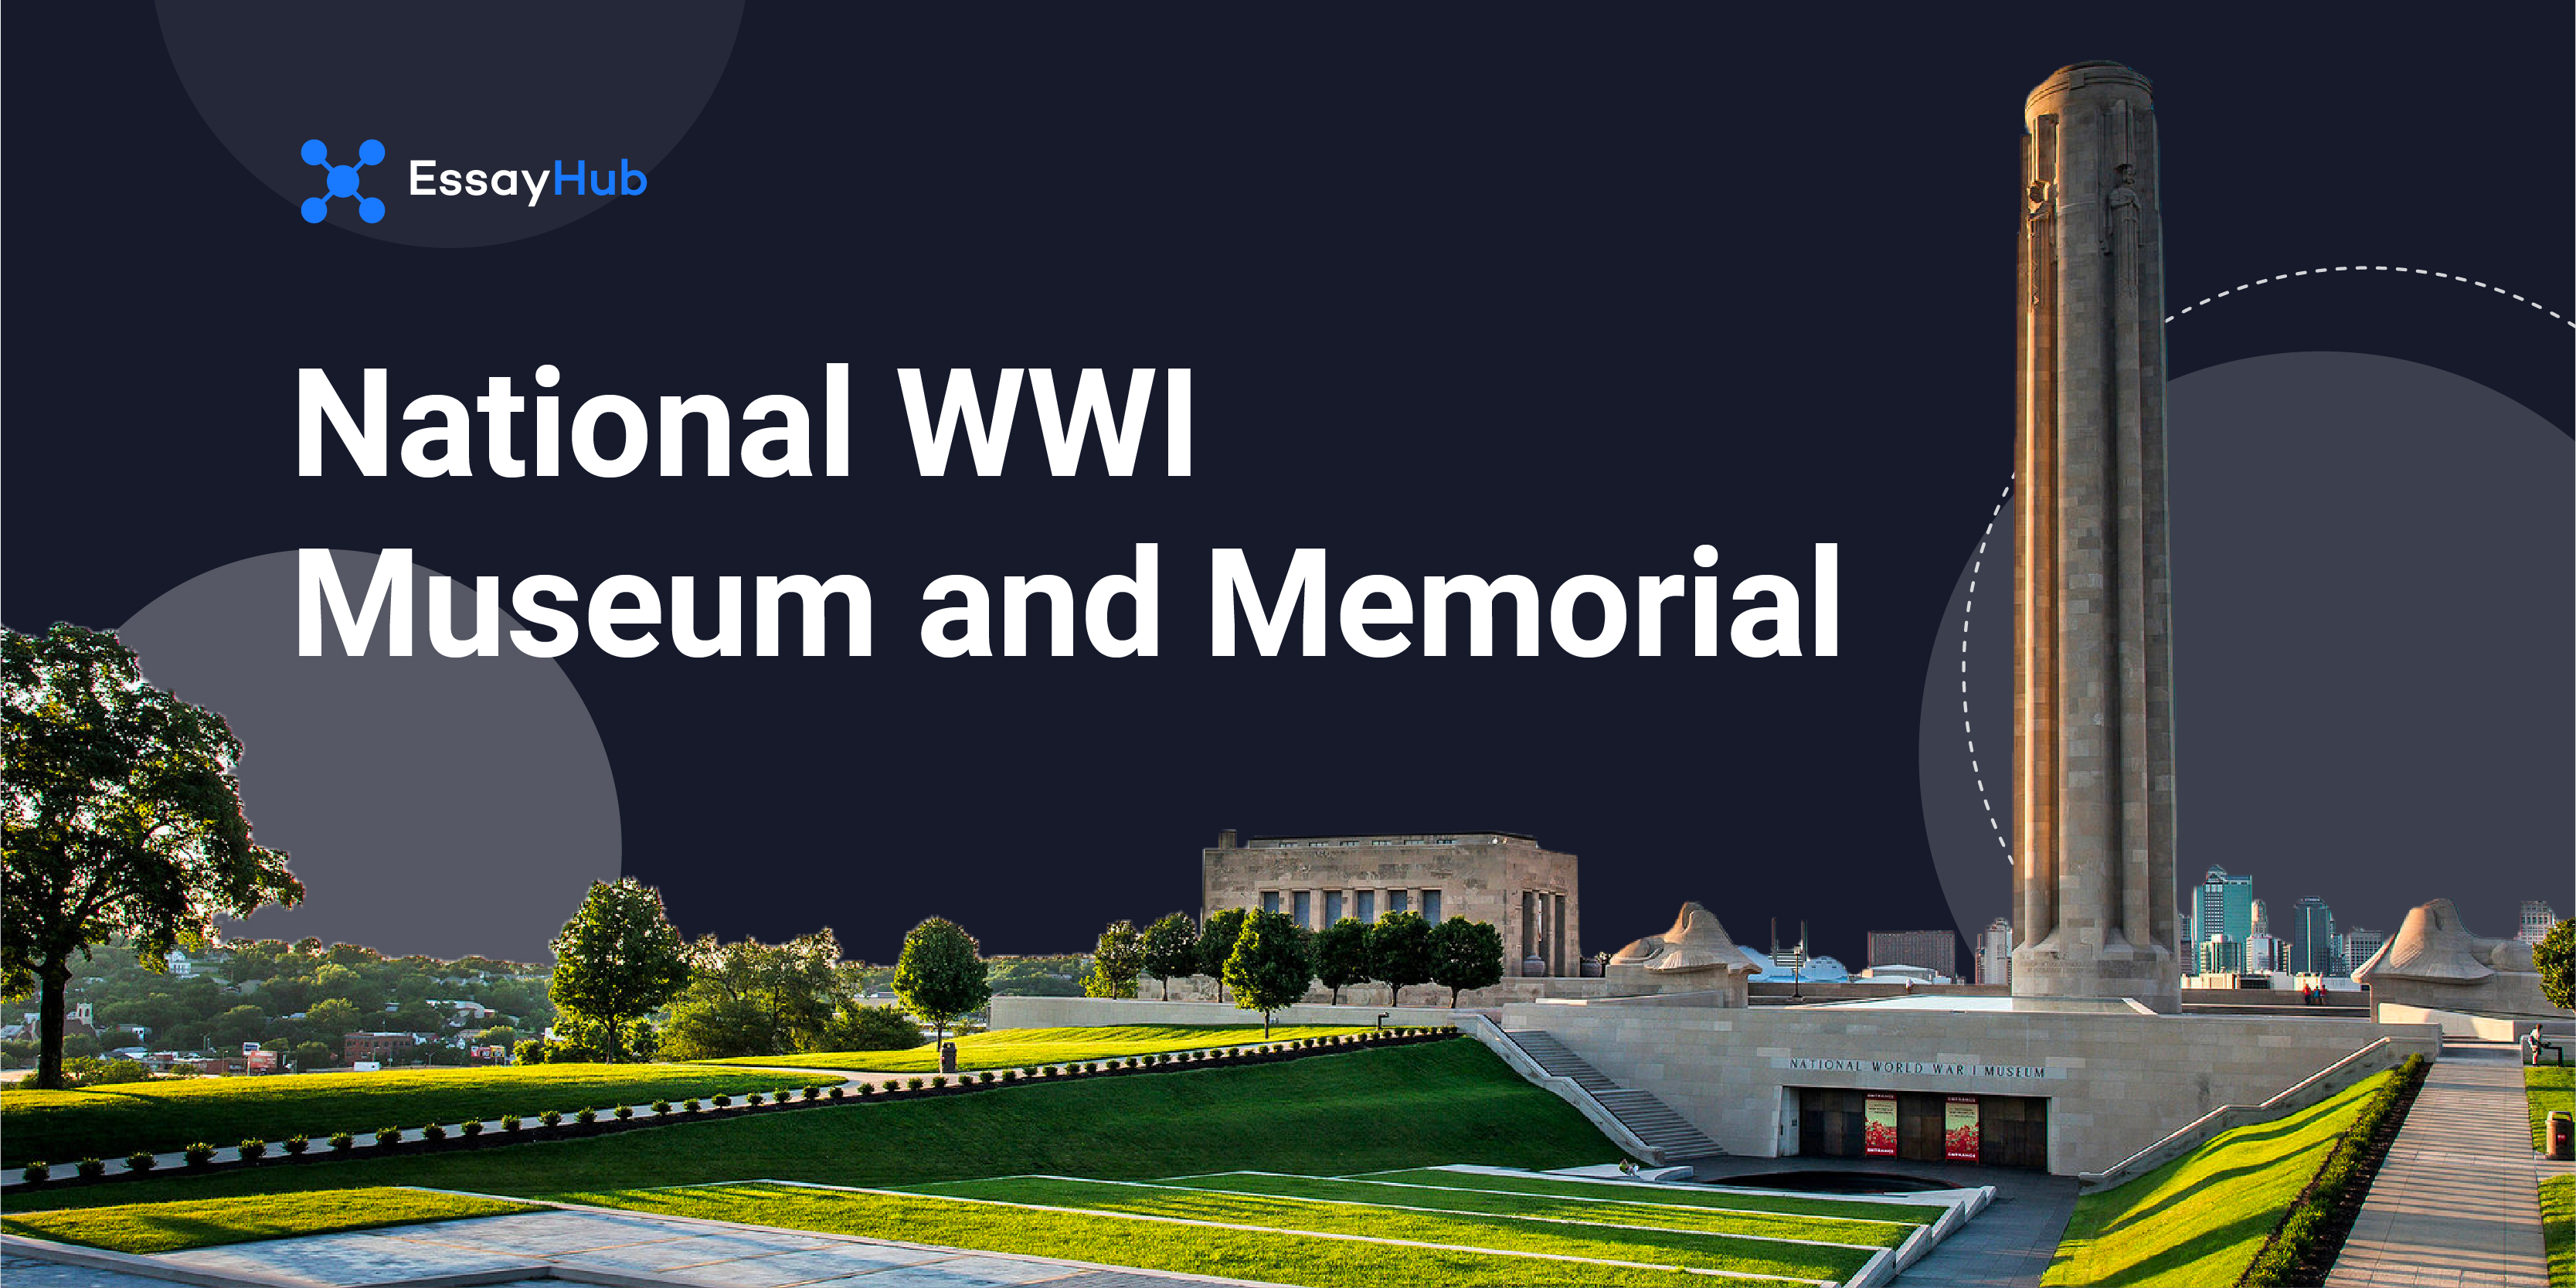 National WWI Museum and Memorial Is One of the Most Famous History Essay Topics